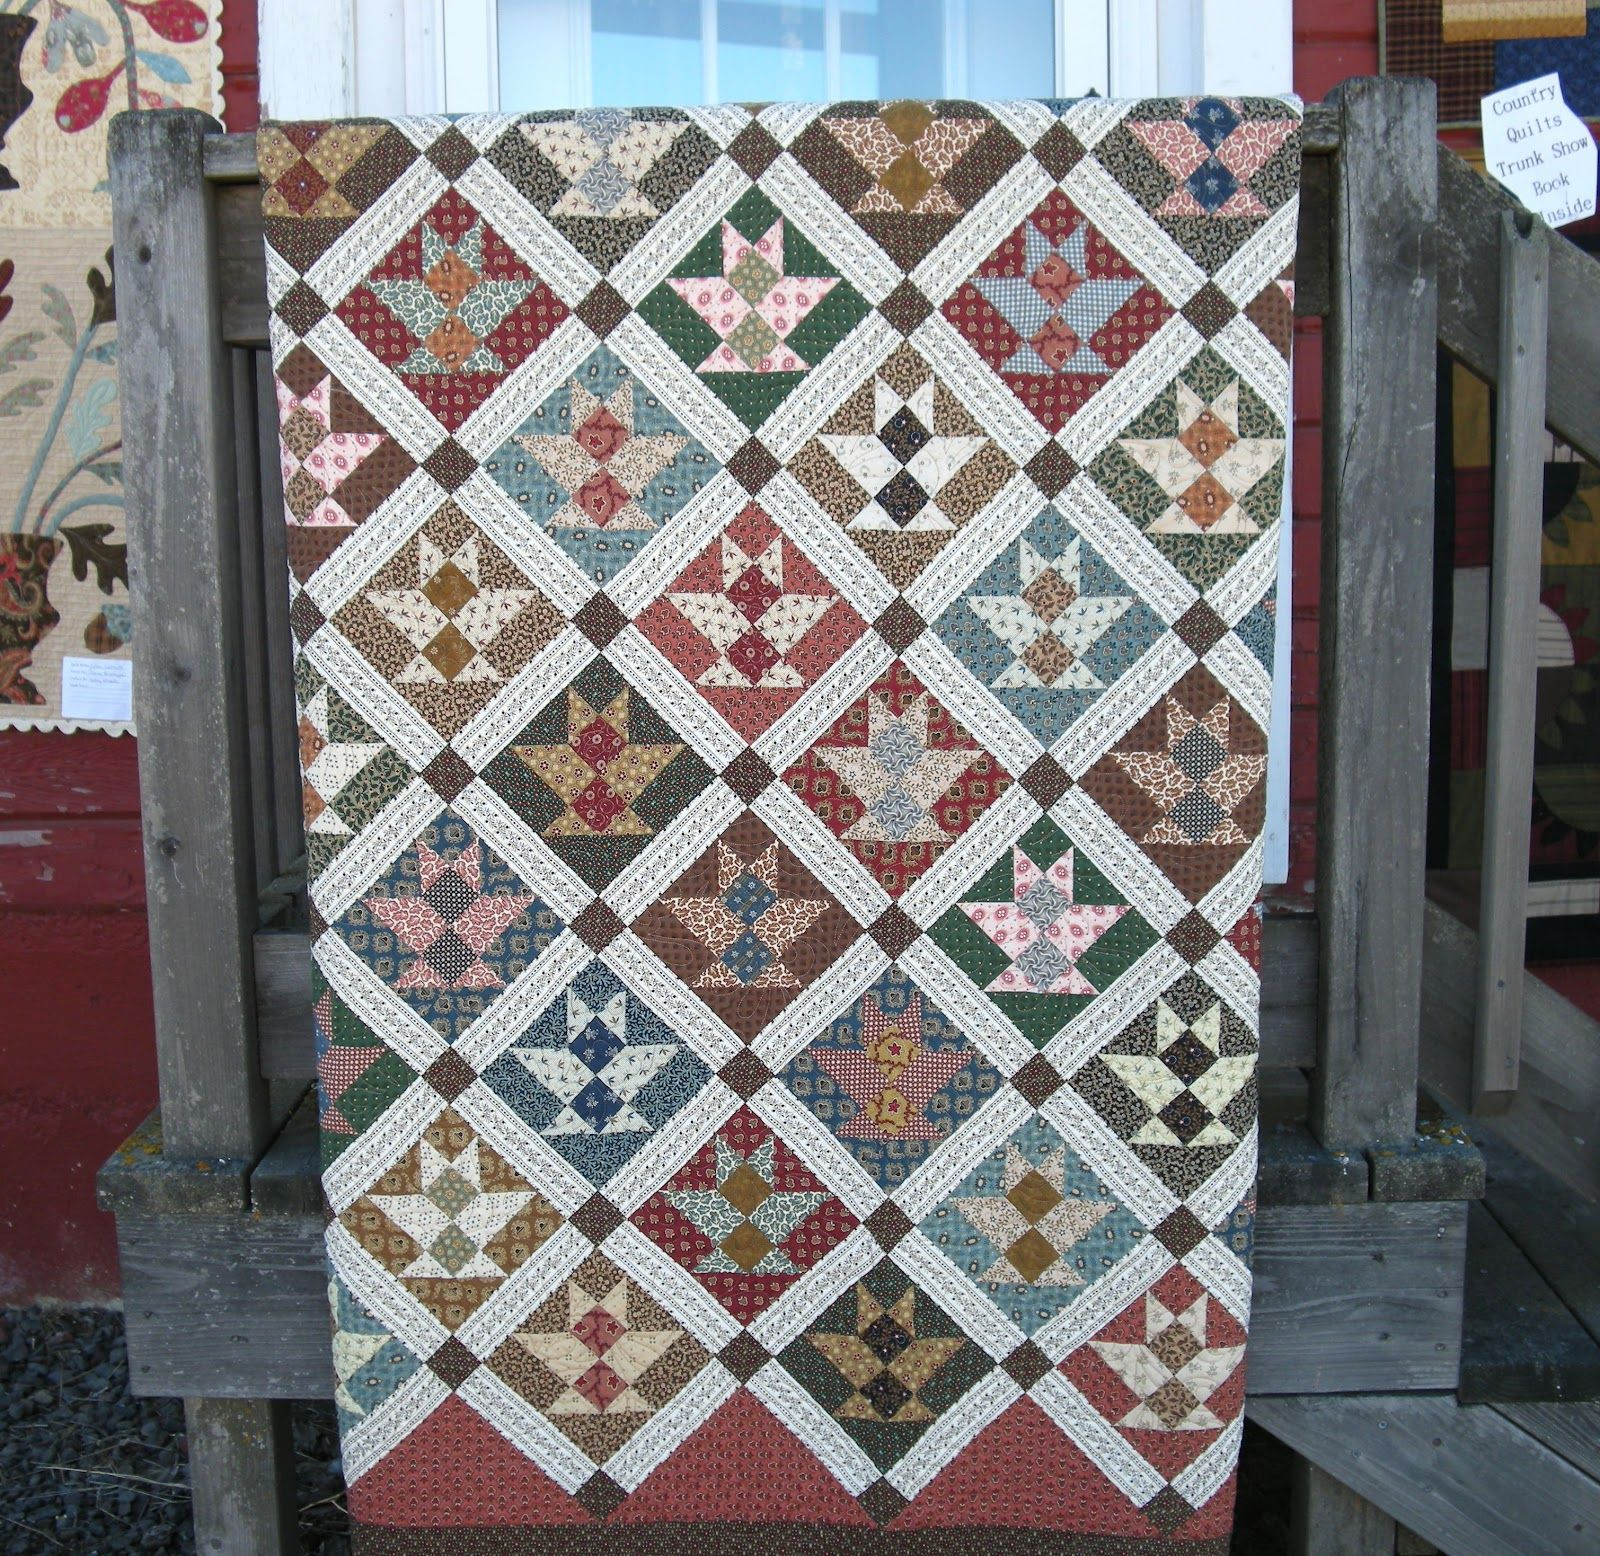 Quilty Folk: Search results for buggy barn | Quilts II | Pinterest ... : buggy barn quilt show - Adamdwight.com